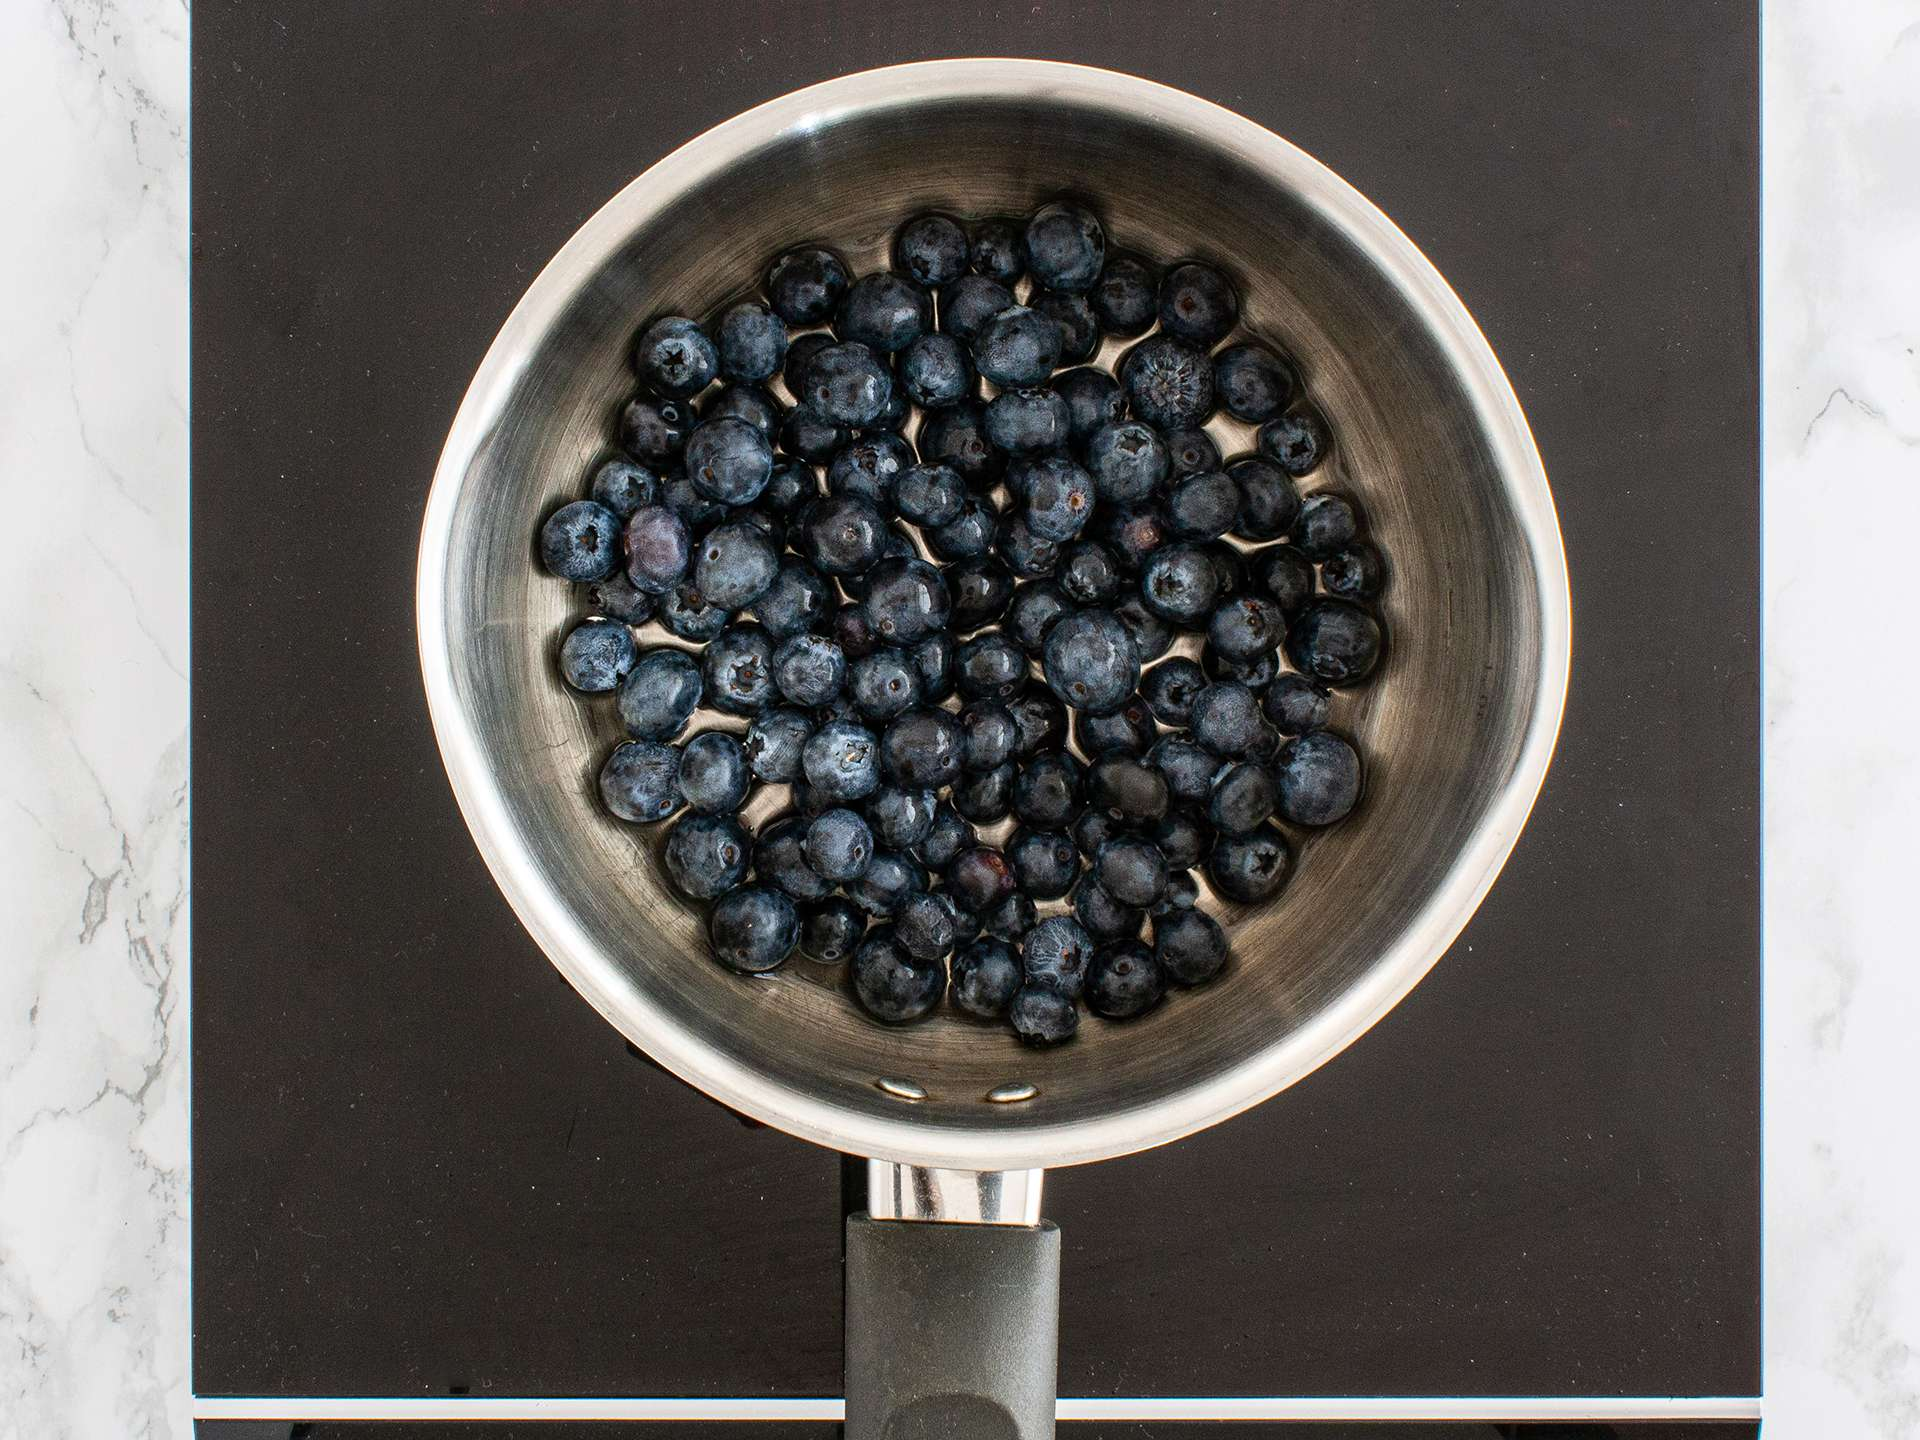 Step 1.1 of Sugar Free Blueberry Jam Recipe with Flaxseeds